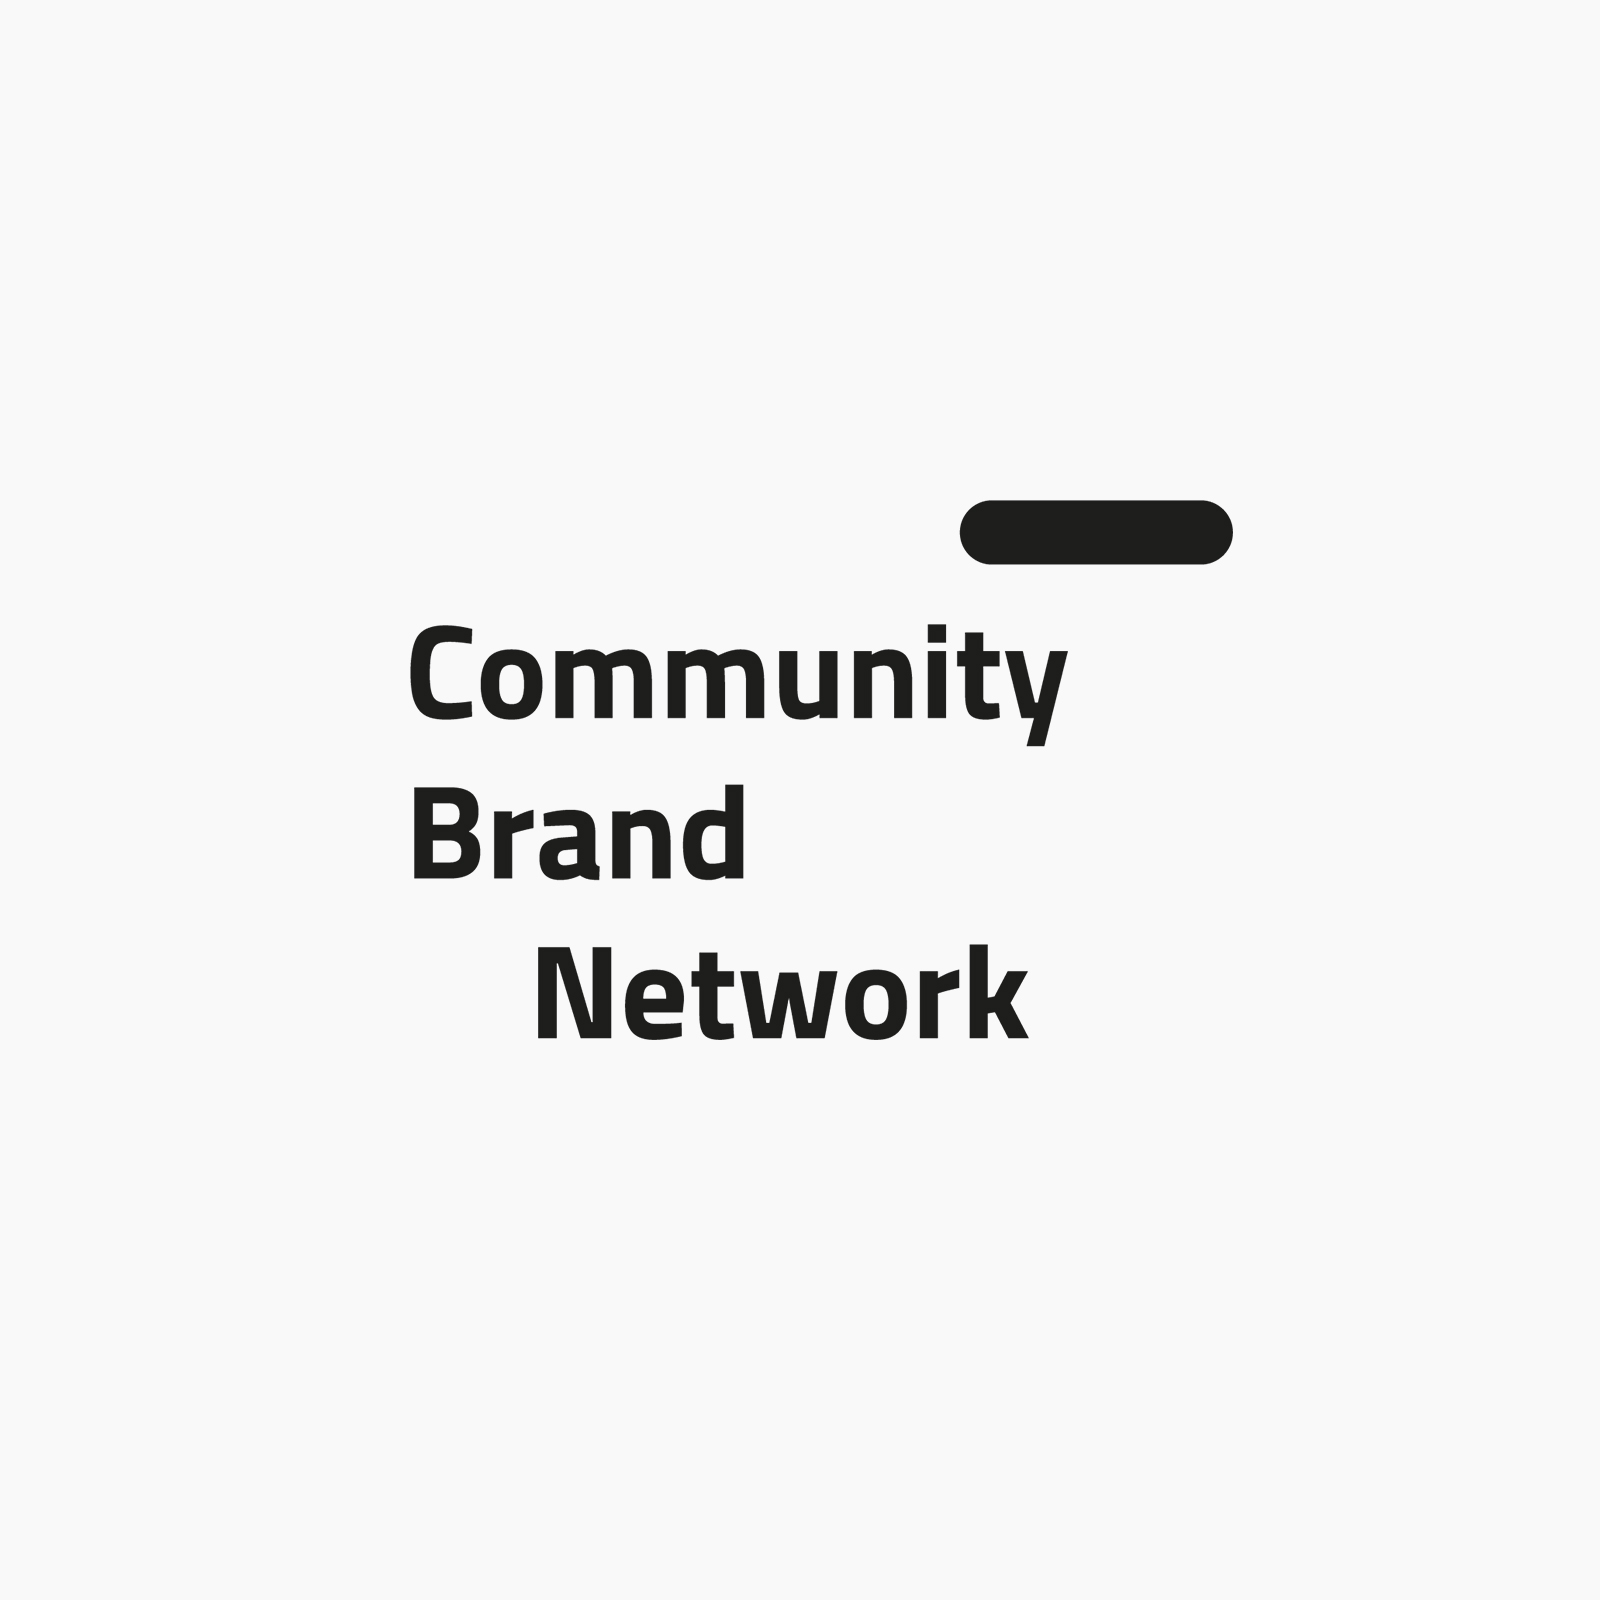 Community Brand Network - We believe in the network economy. Because no one can do it all! The community brand network is a network of specialised agencies that all bring their piece to the puzzle in building a community brand. We guide and inspire you to become a community brand.